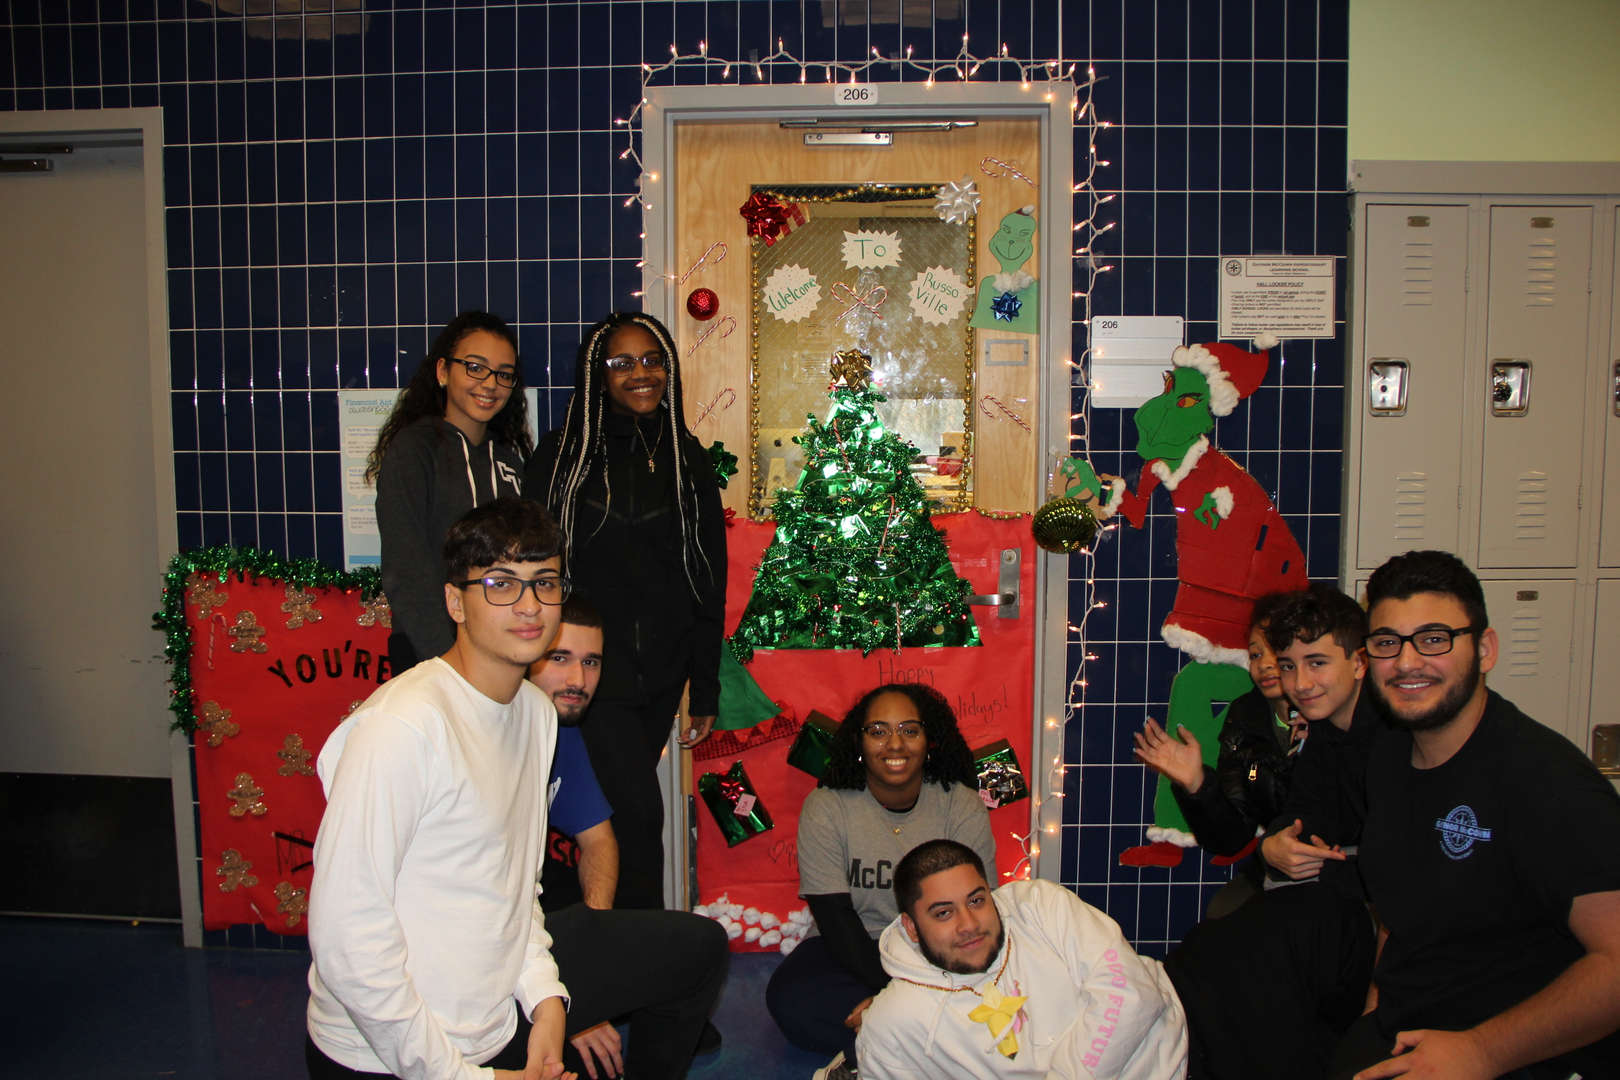 Group of students pose in front of Christmas tree door decor